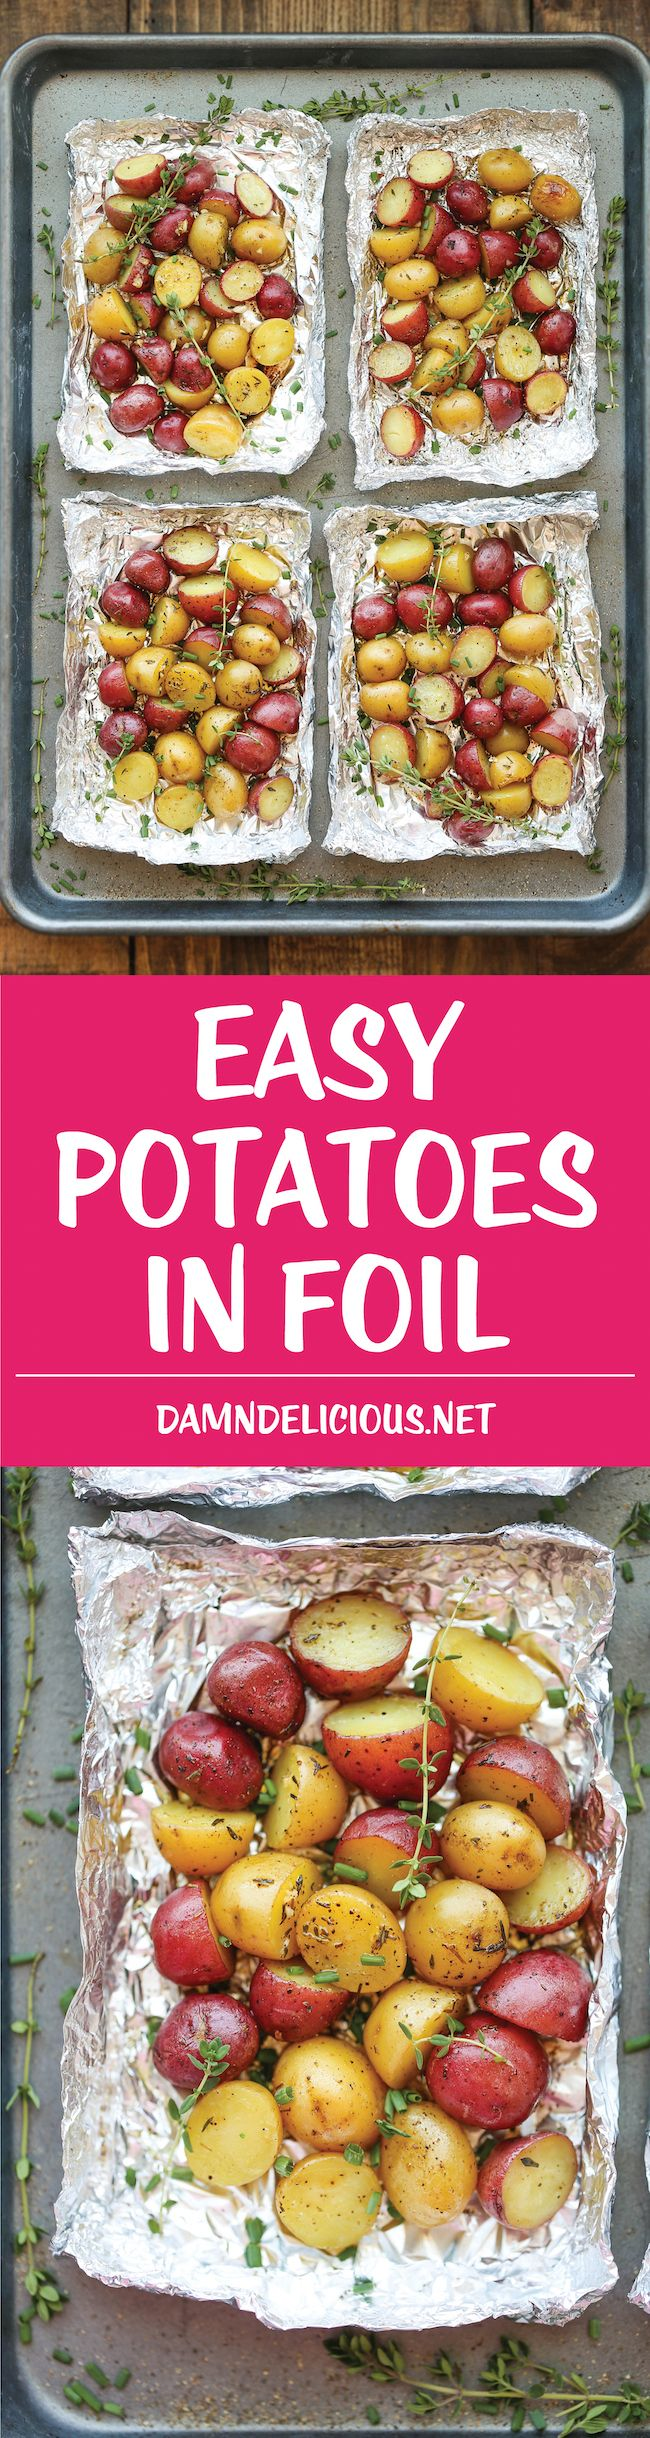 Easy Potatoes in Foil - You won't believe how easy it is to make potatoes right in foil - simply cut, wrap in foil and bake. Easy clean-up and just so good! #recipe